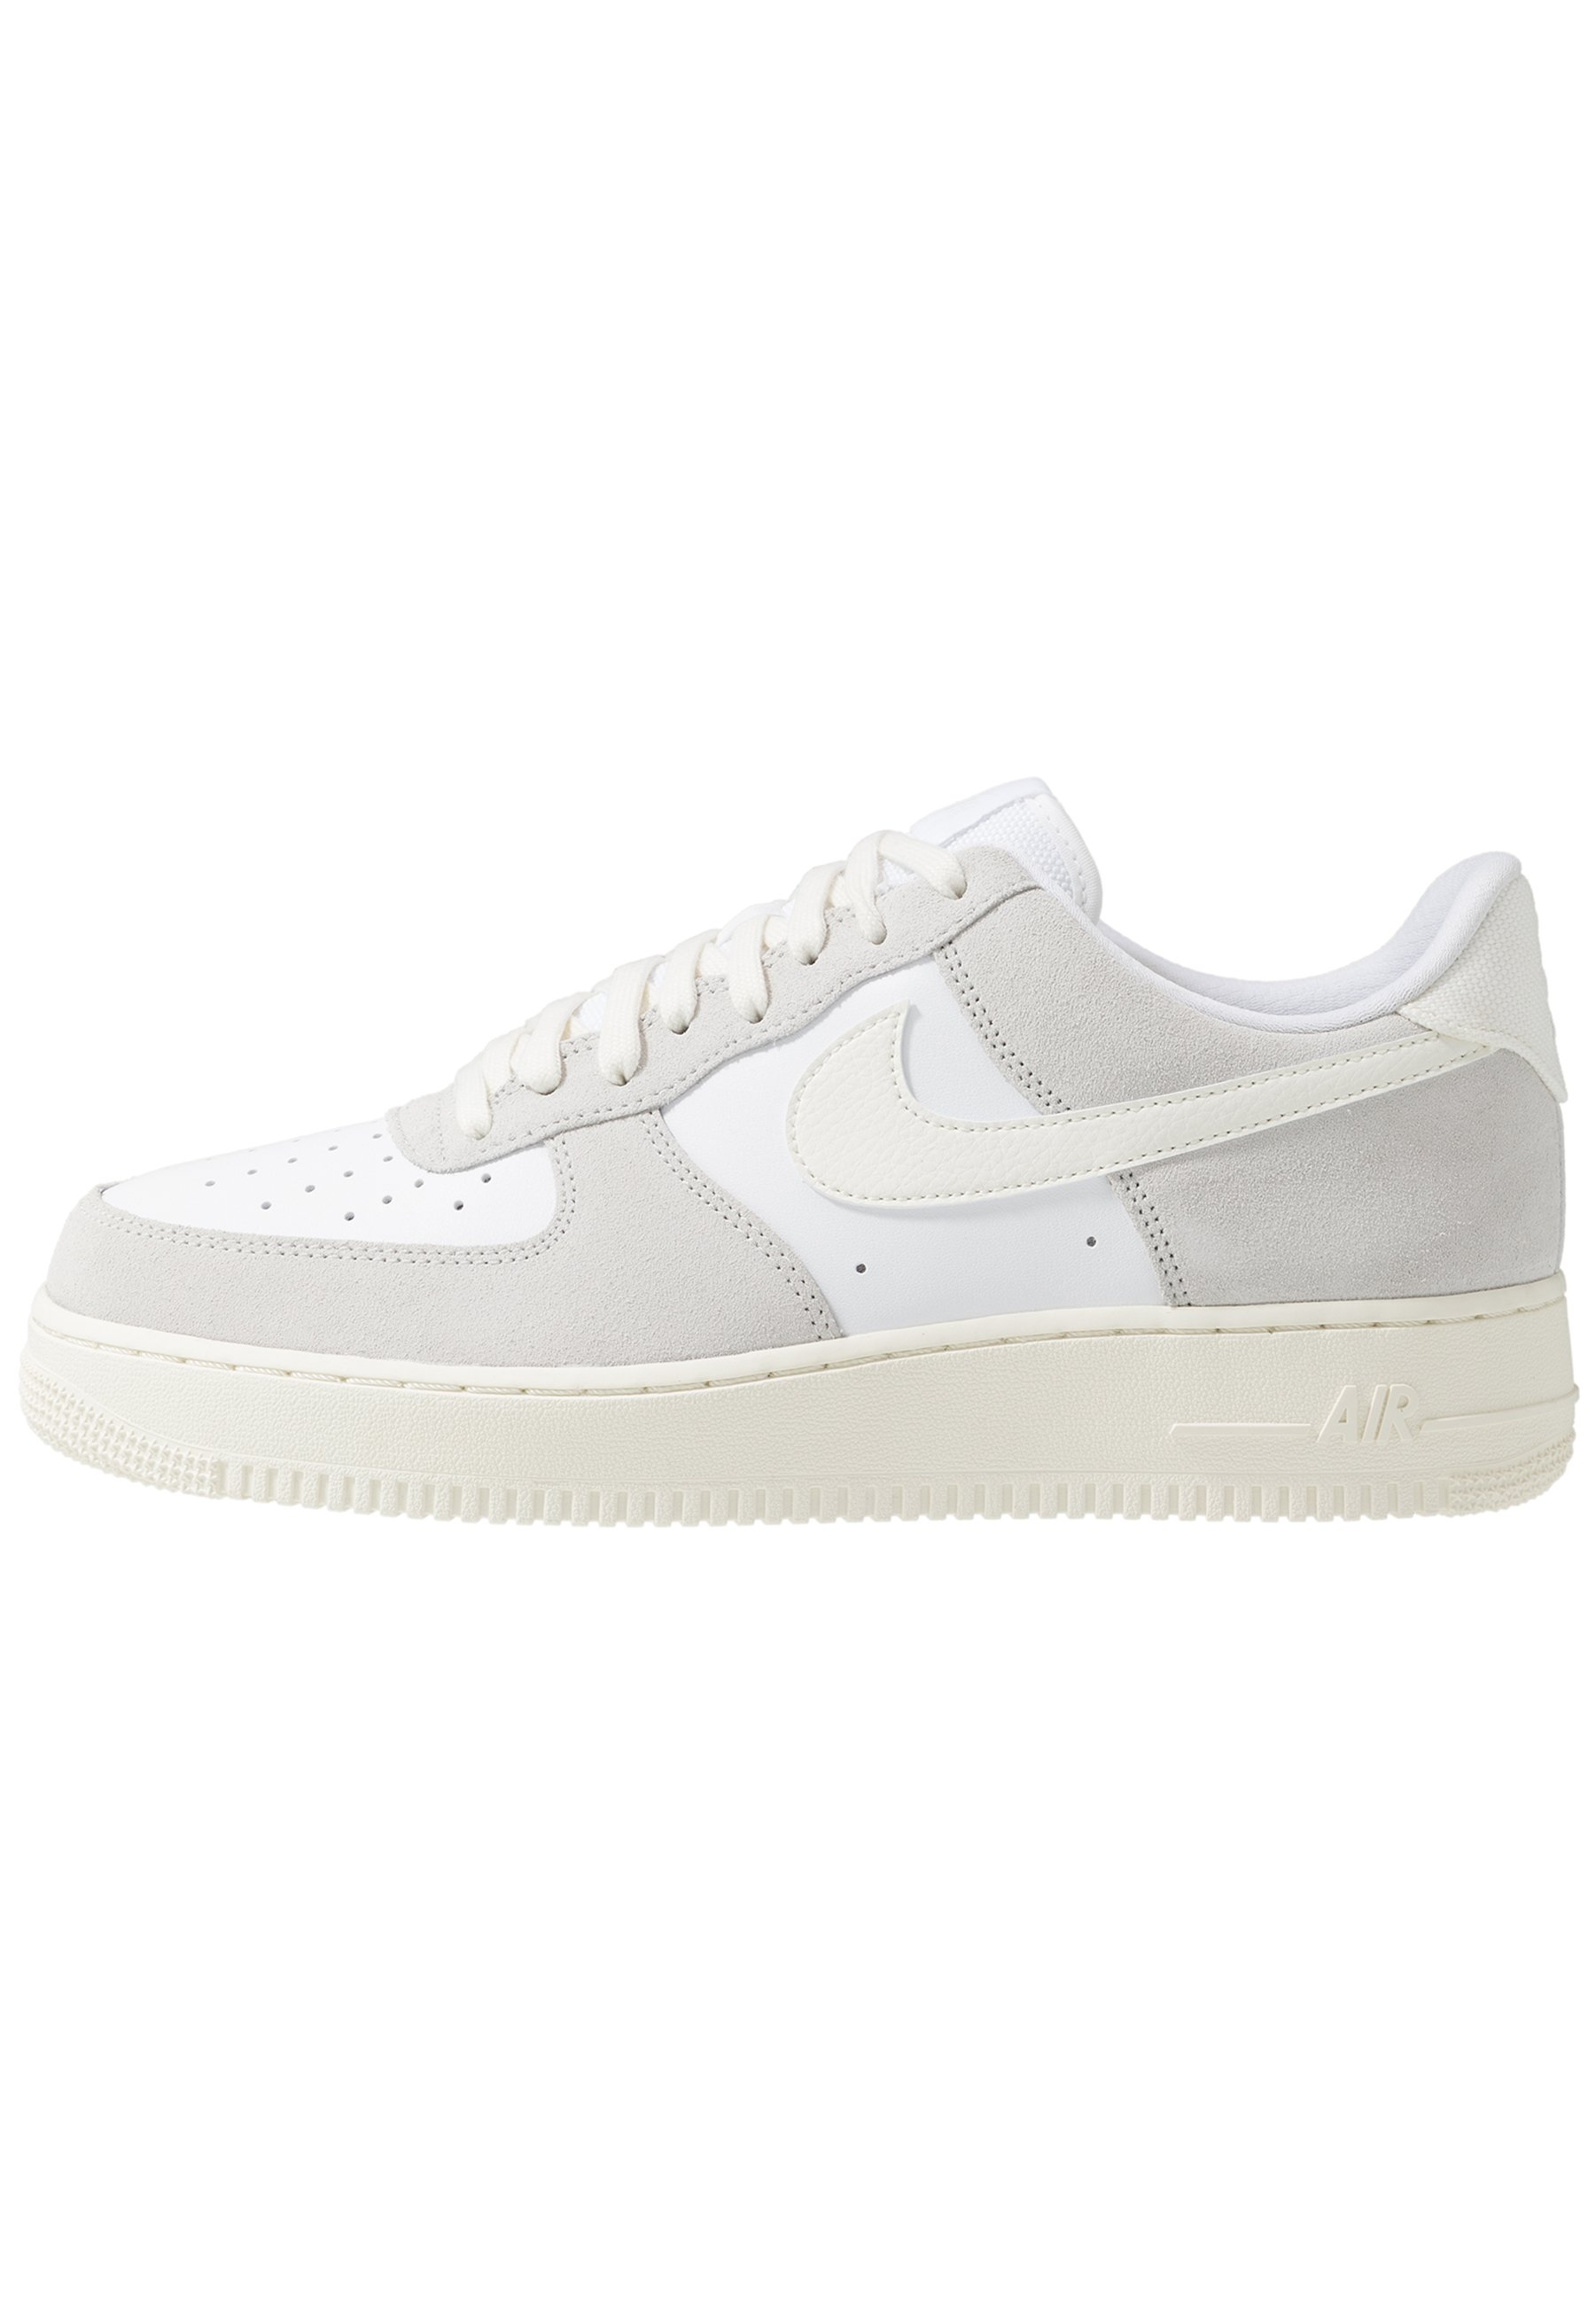 AIR FORCE 1 LV8 Sneaker low whitesailplatinum tint